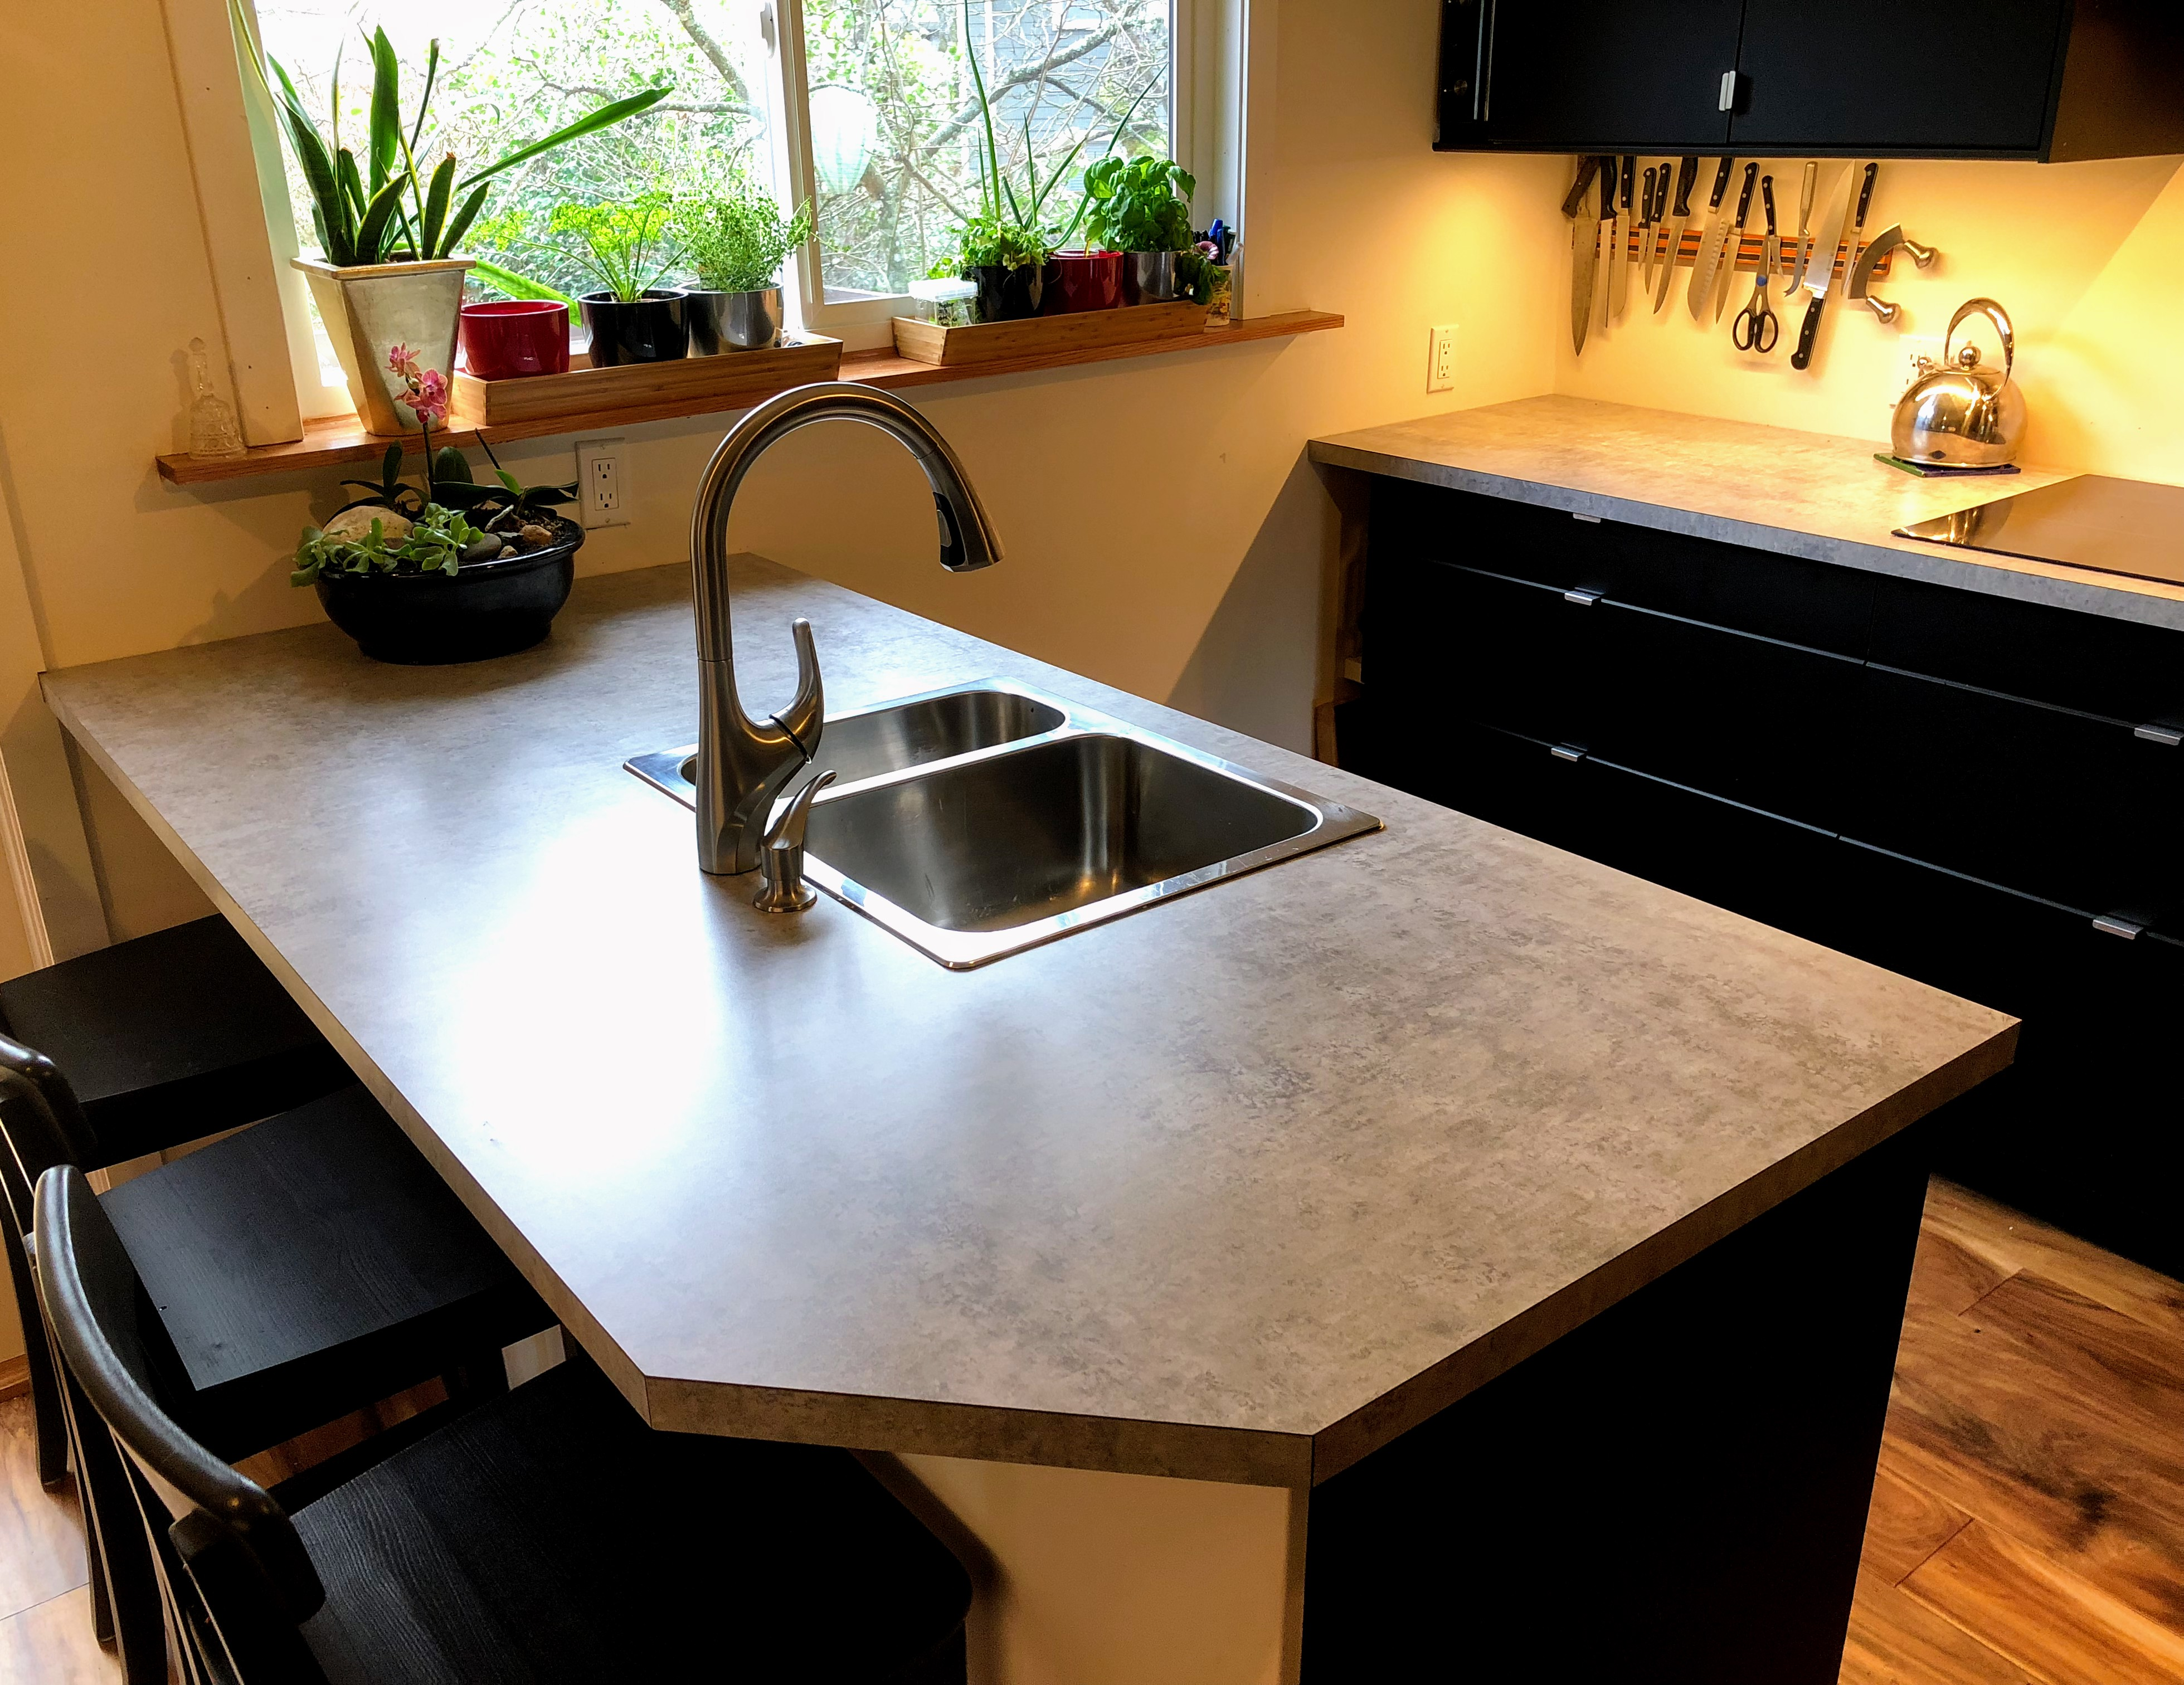 Diy Laminate Countertops 8 Steps With Pictures Instructables